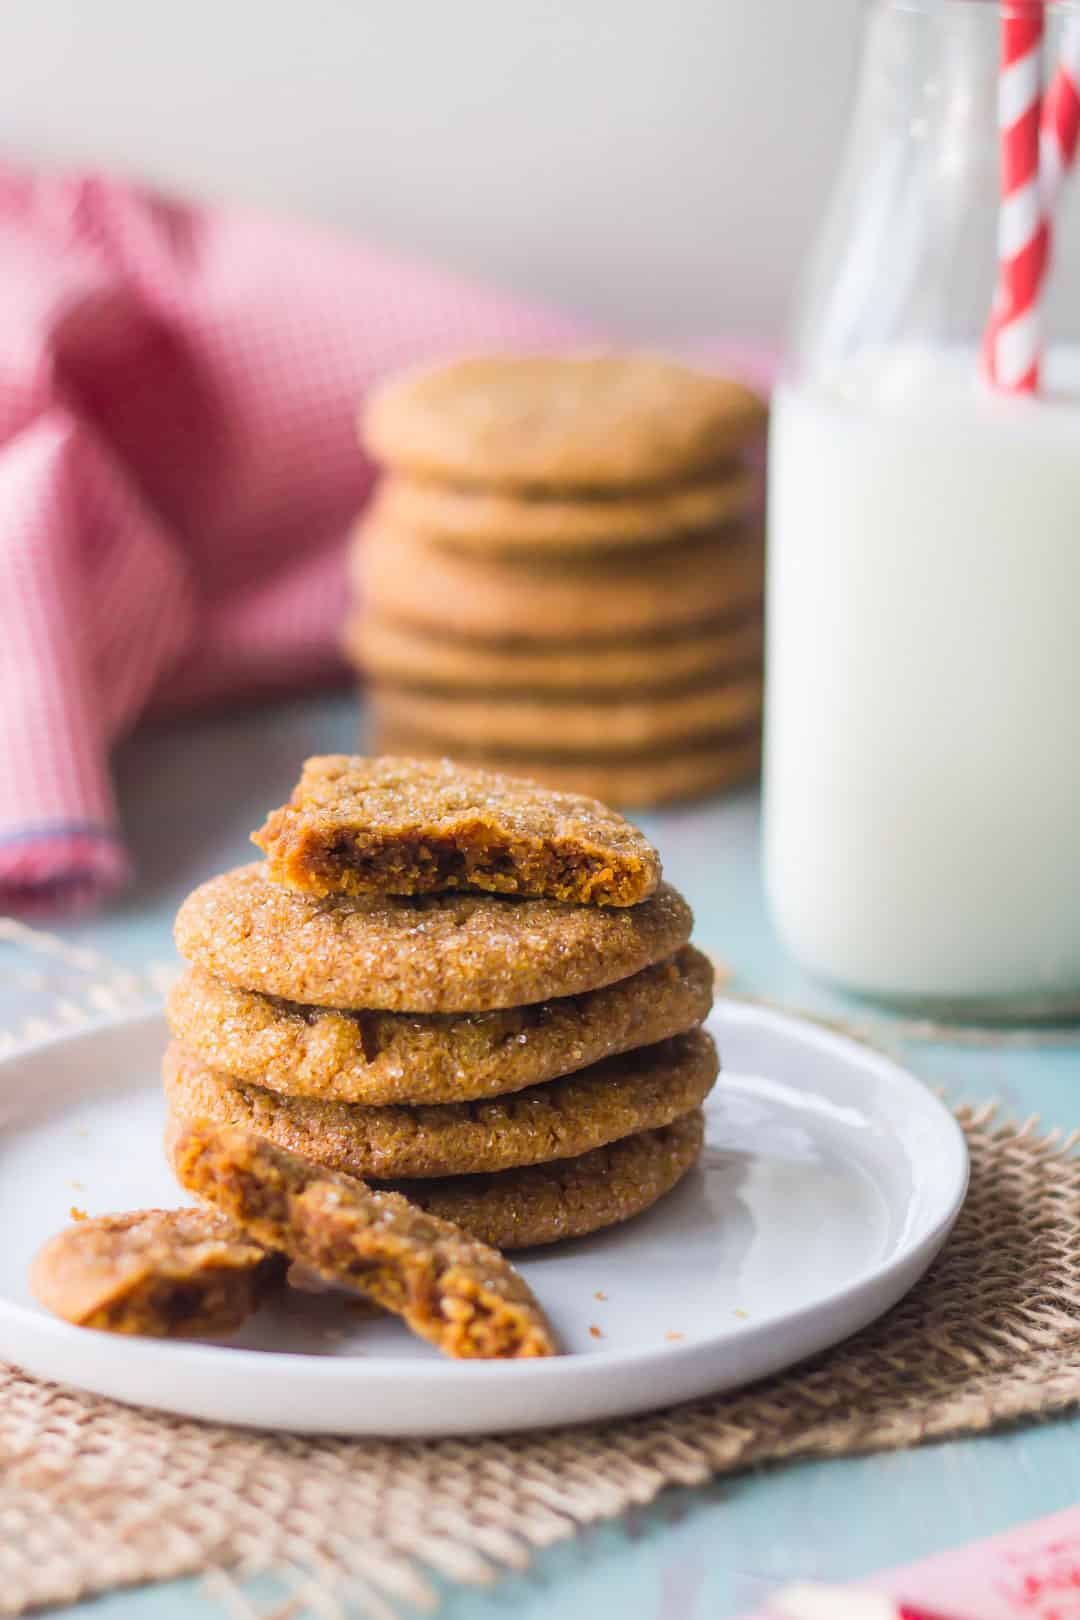 Stack of ginger molasses cookies on a white plate, with a bottle of milk in the background and a red checkered napkin.